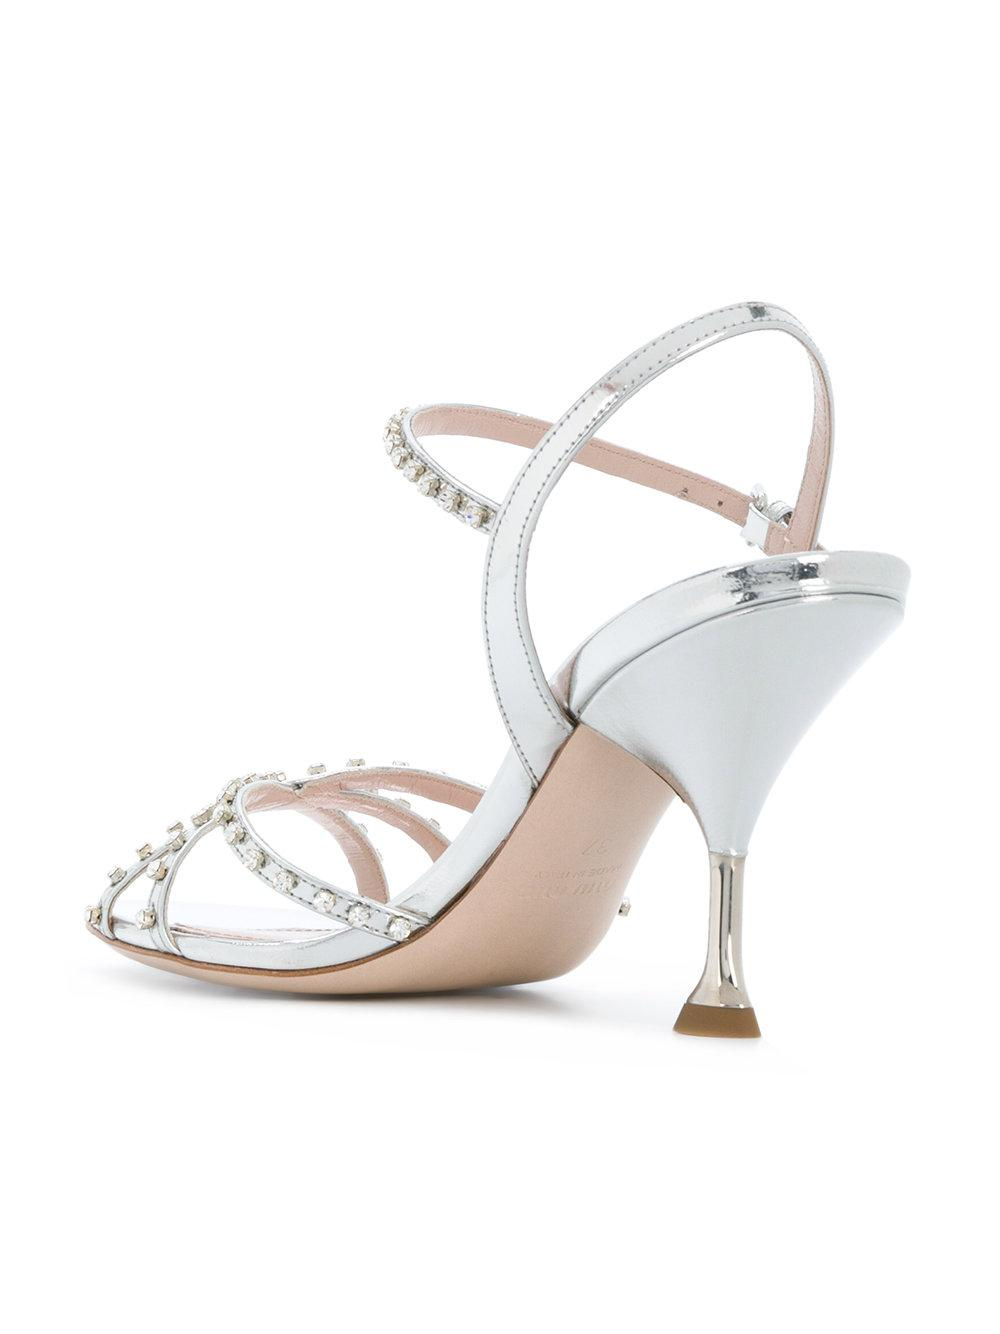 Miu Miurhinestone embellished metallic sandals